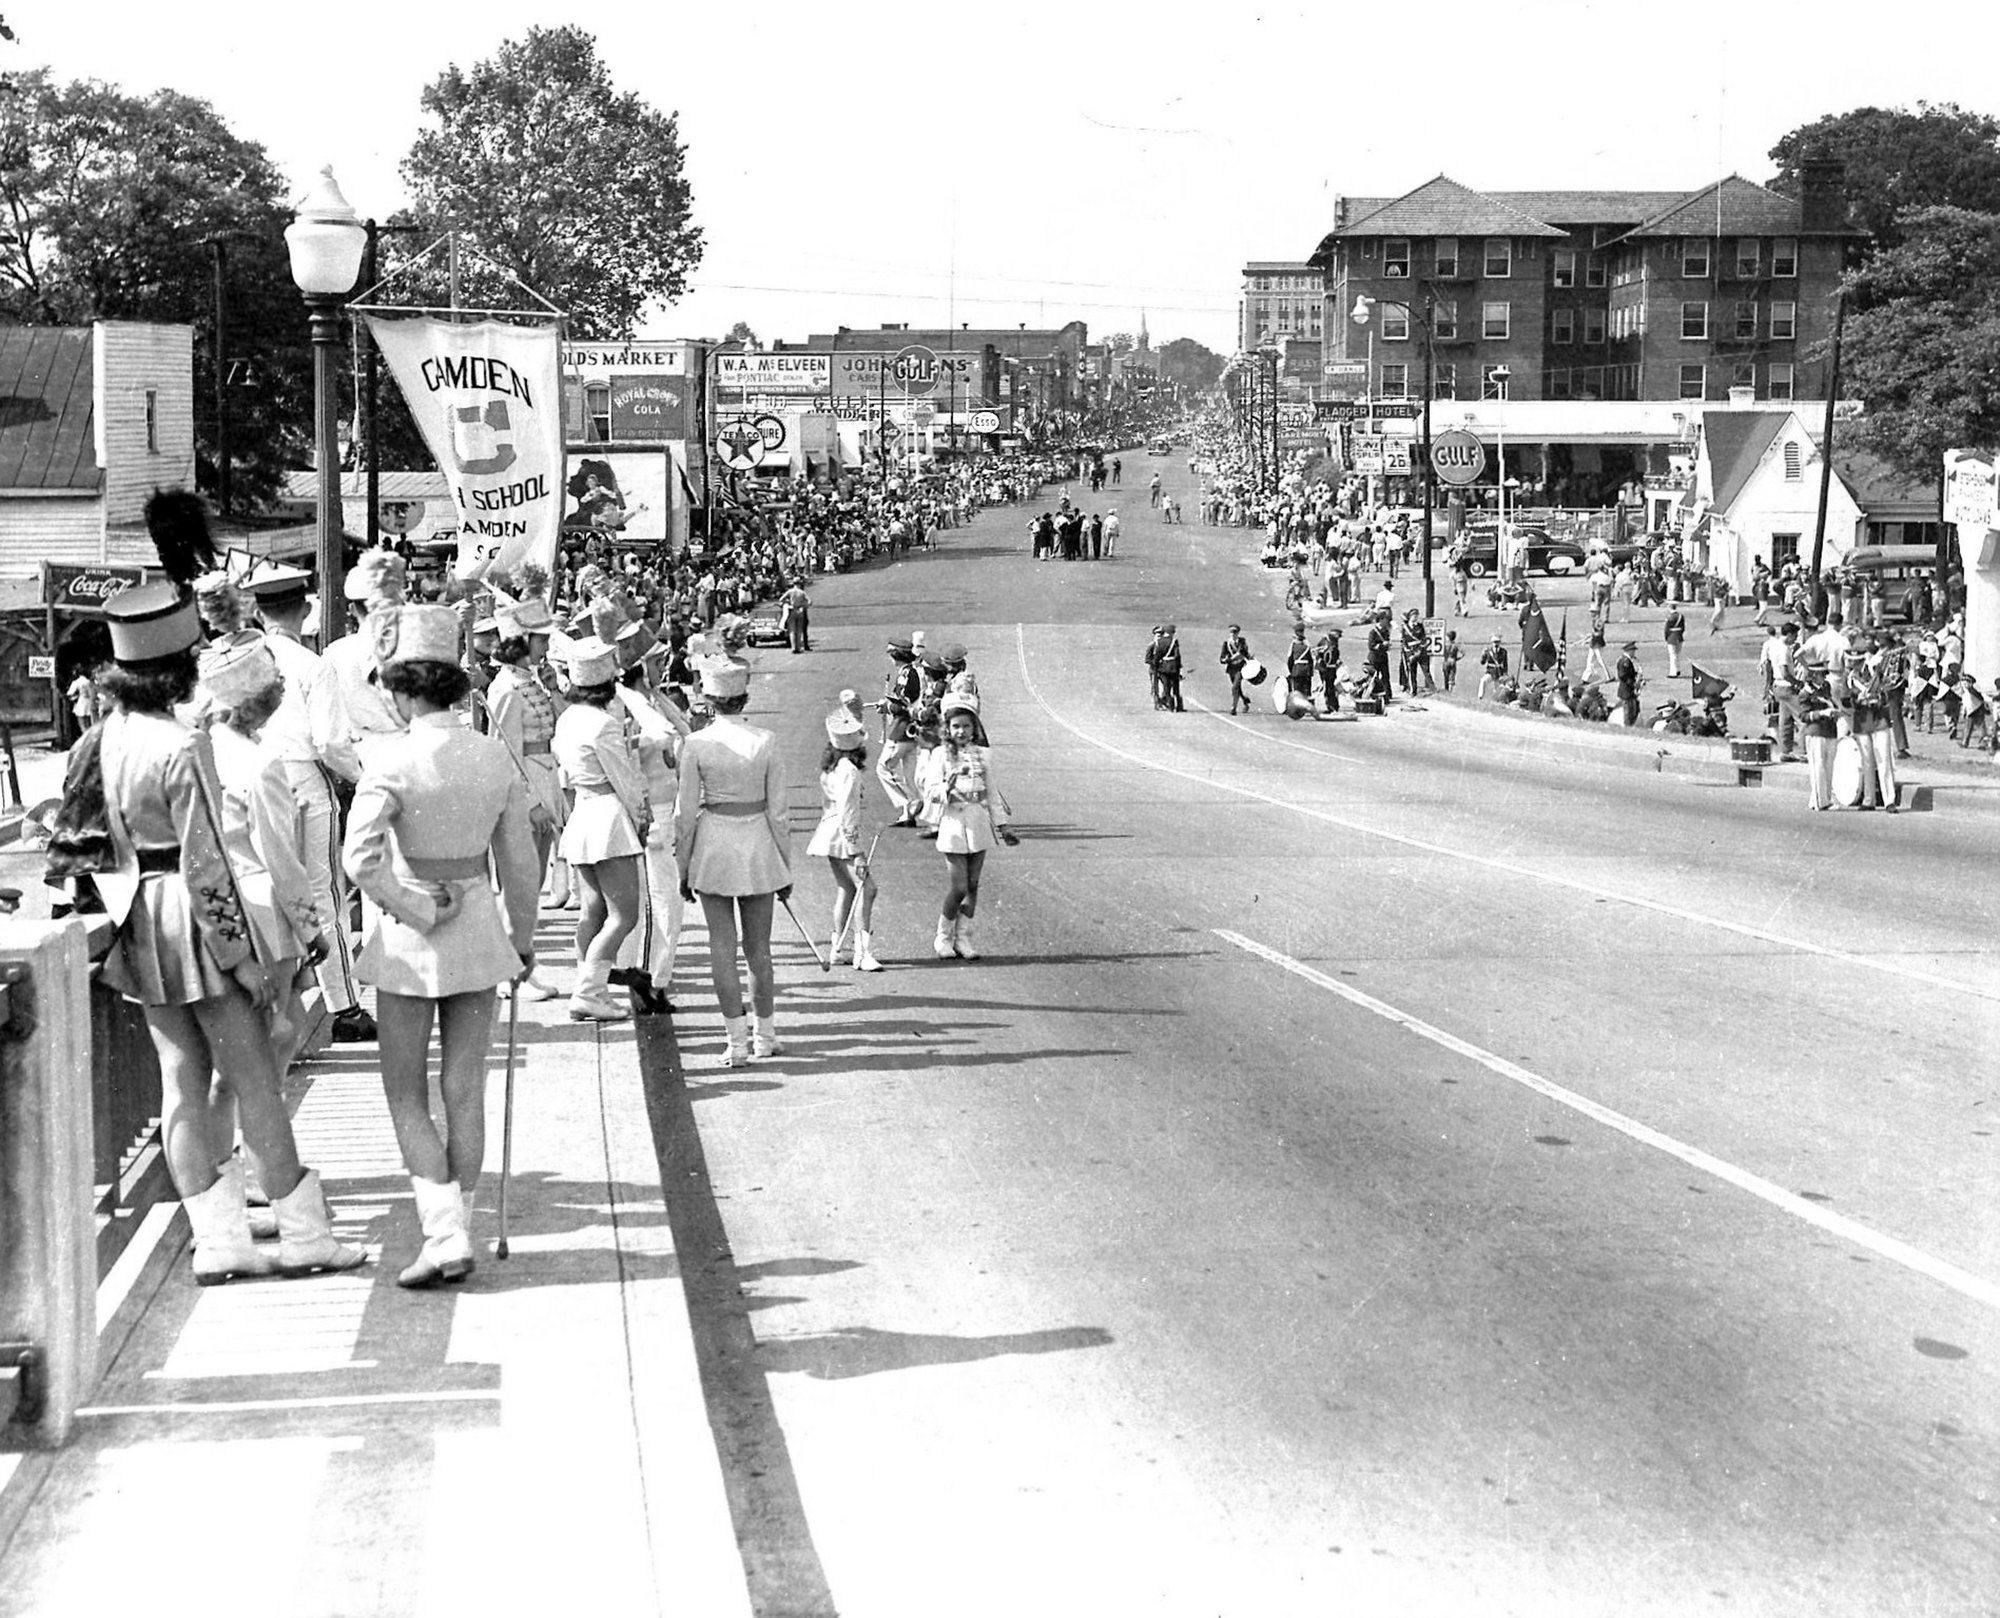 A pre-parade view from the Manning Avenue looking north up Main Street before the beginning of the 1950 sesquicentennial is seen.